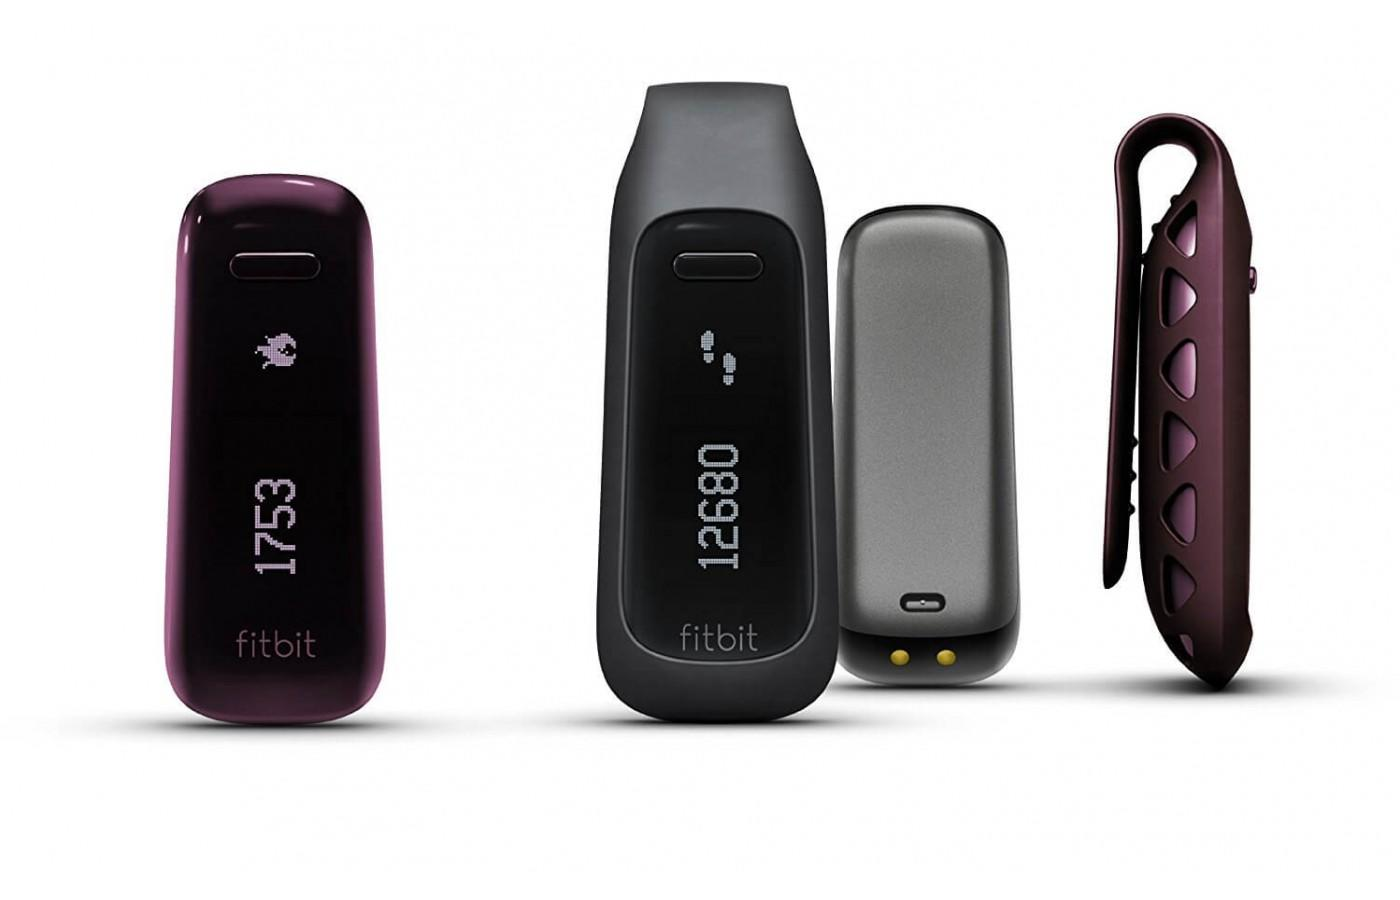 the Fitbit One comes in different colors and is worn clipped to the user's clothing